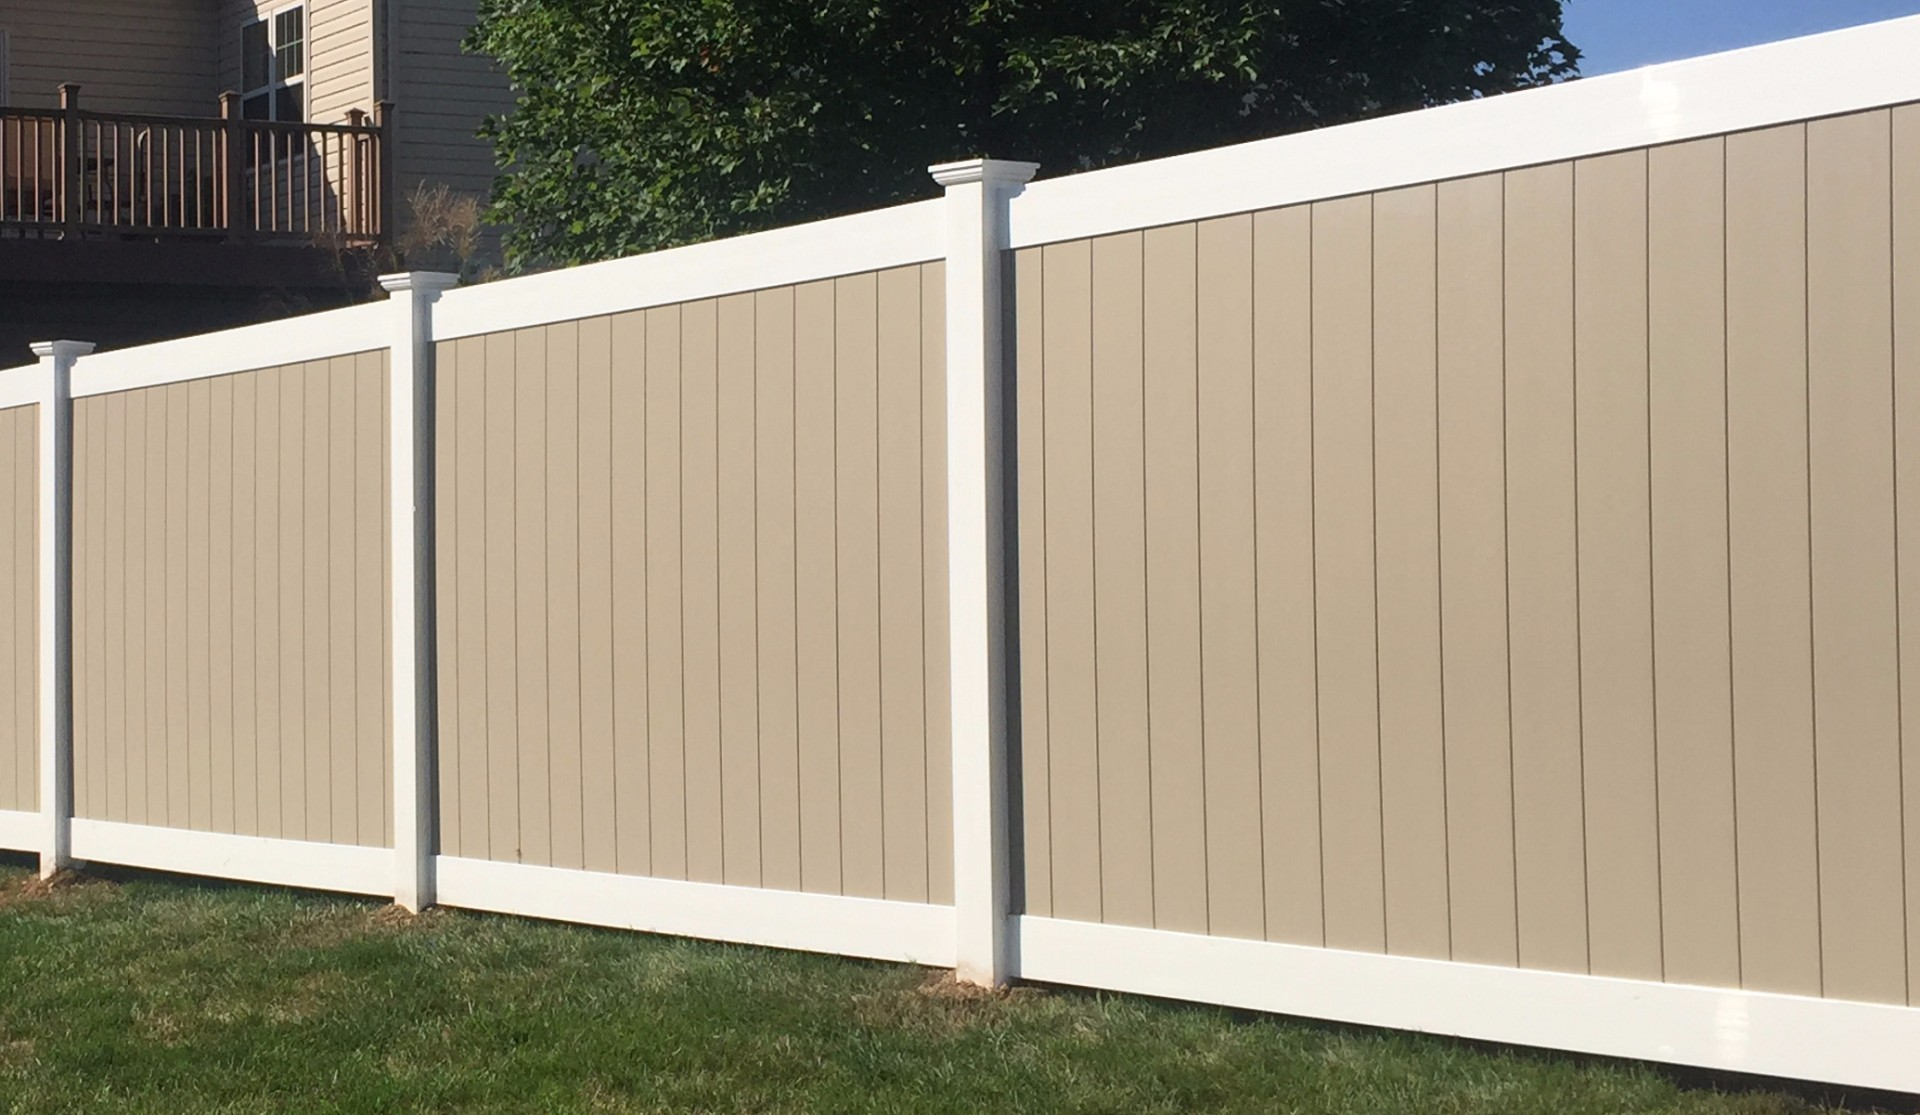 Vinyl Fence Pictures In Lebanon County